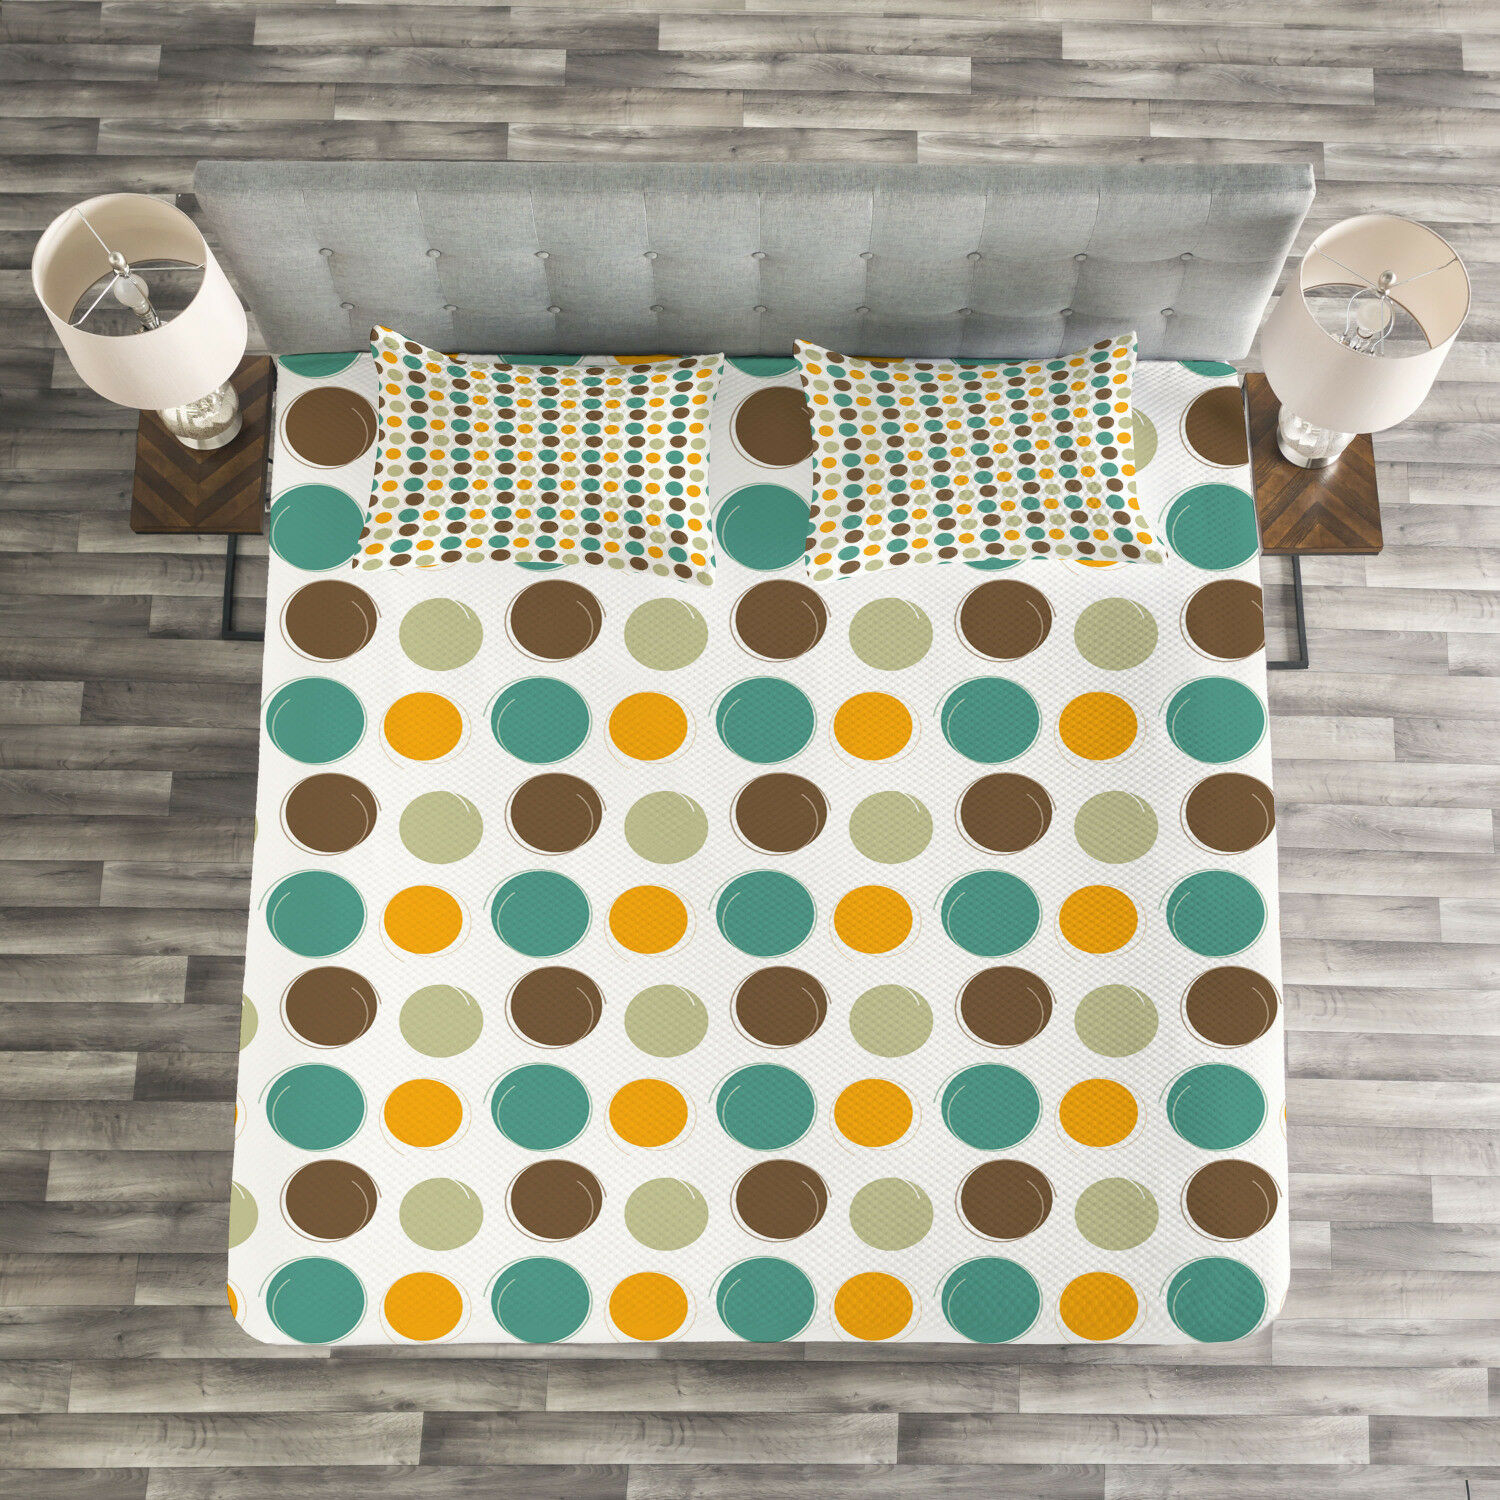 Retro Quilted Bedspread & Pillow Shams Set, colorful Abstract Dots Print